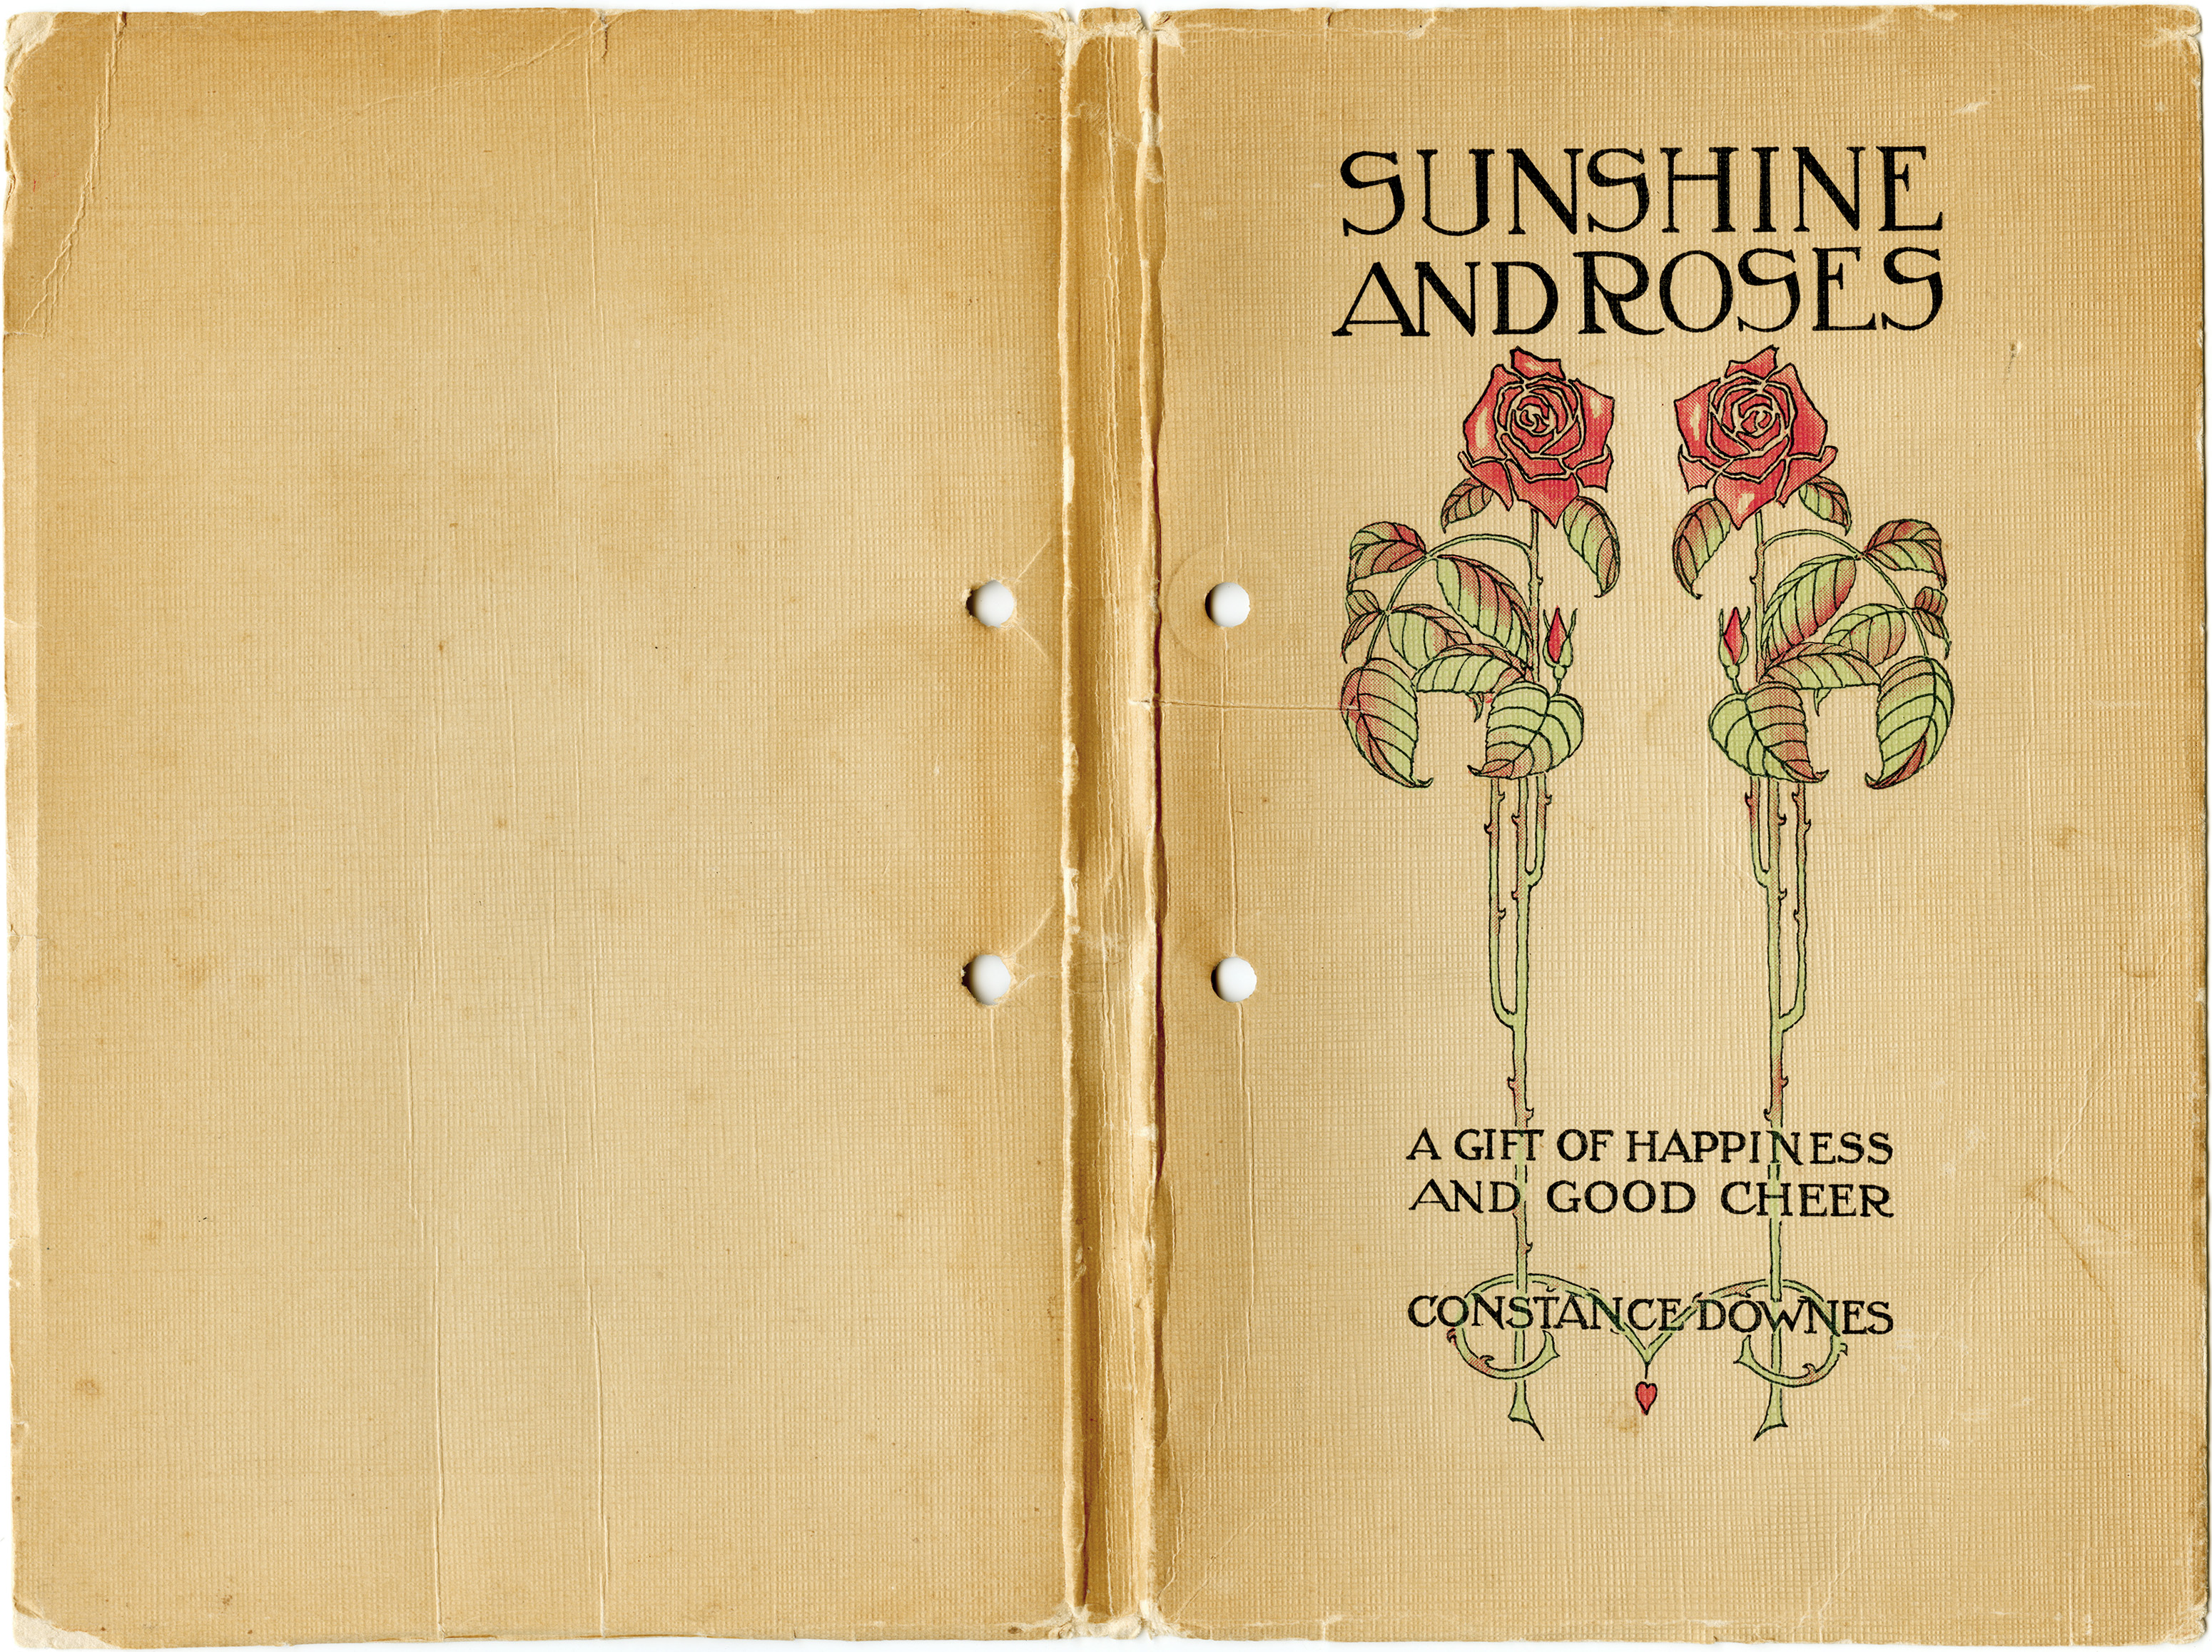 Vintage Book Cover Illustration : Vintage book cover sunshine and roses old design shop